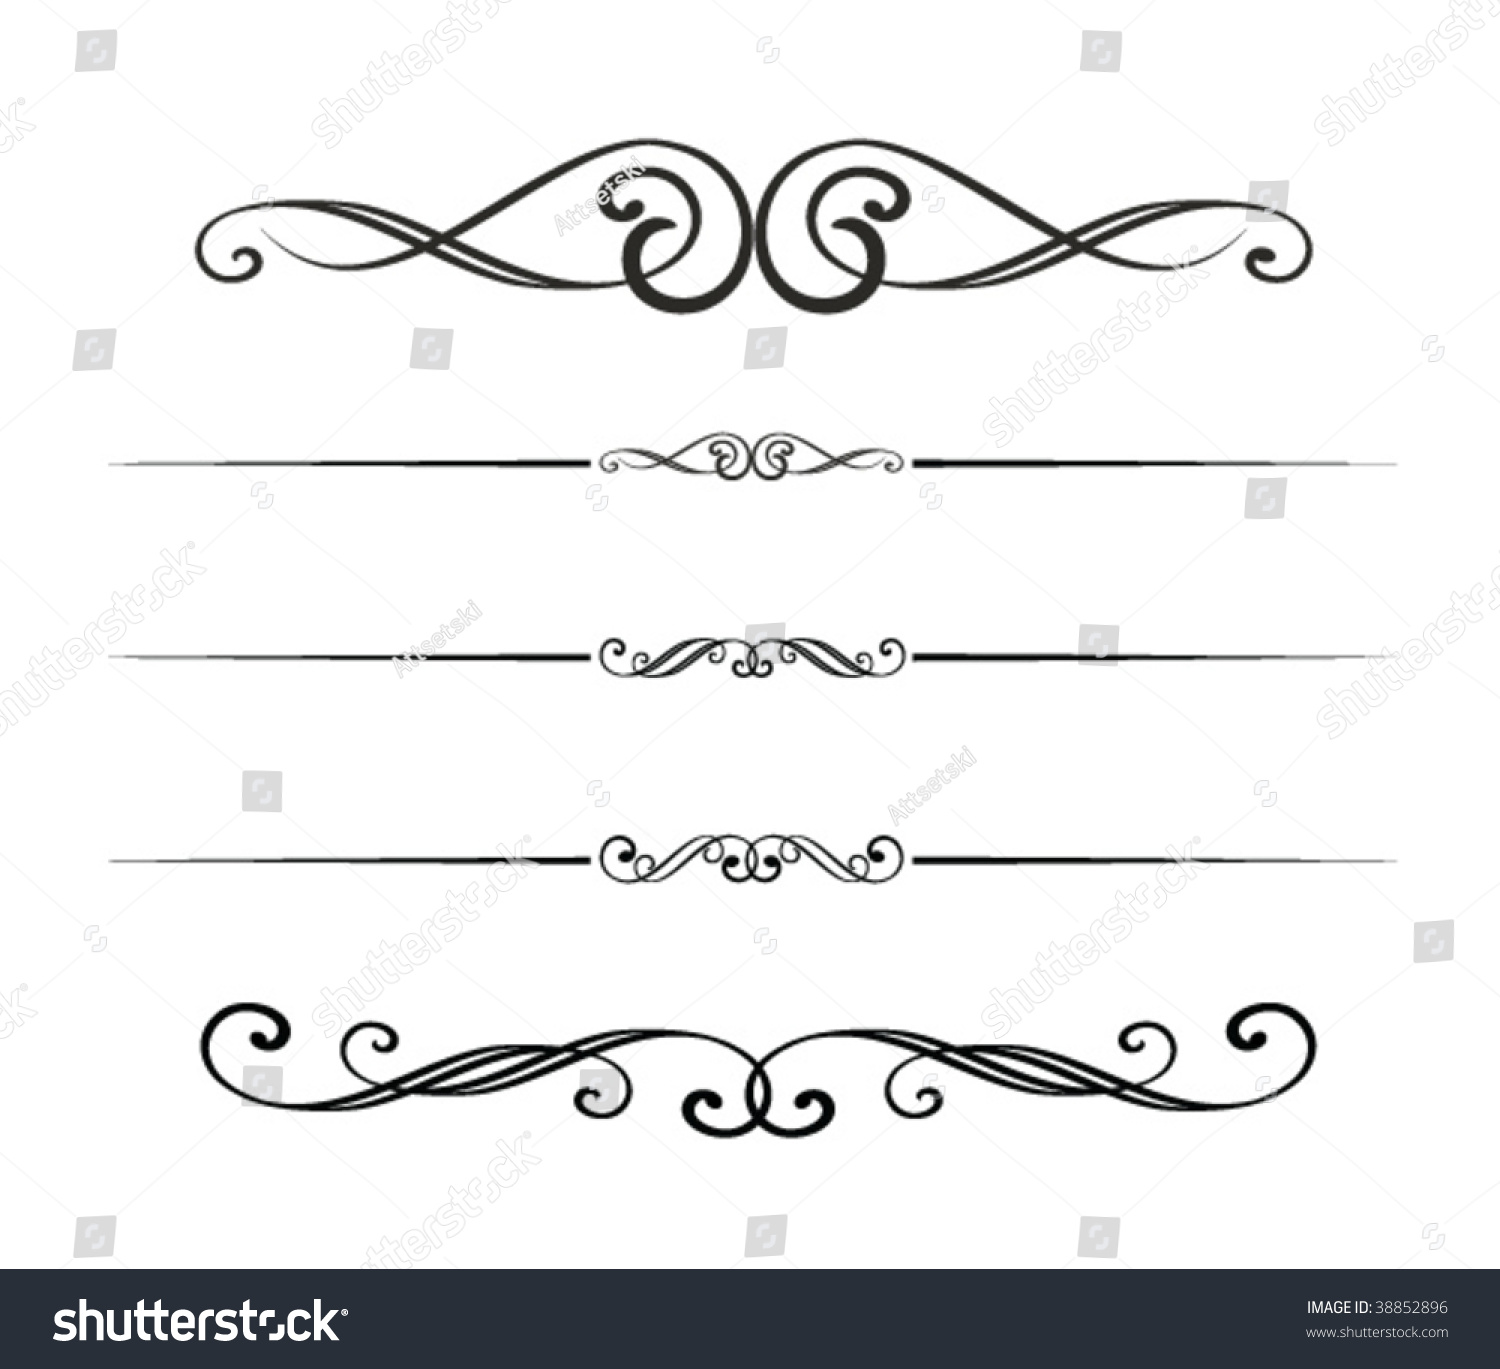 Graphic Design Elements Stock Vector 38852896 - Shutterstock